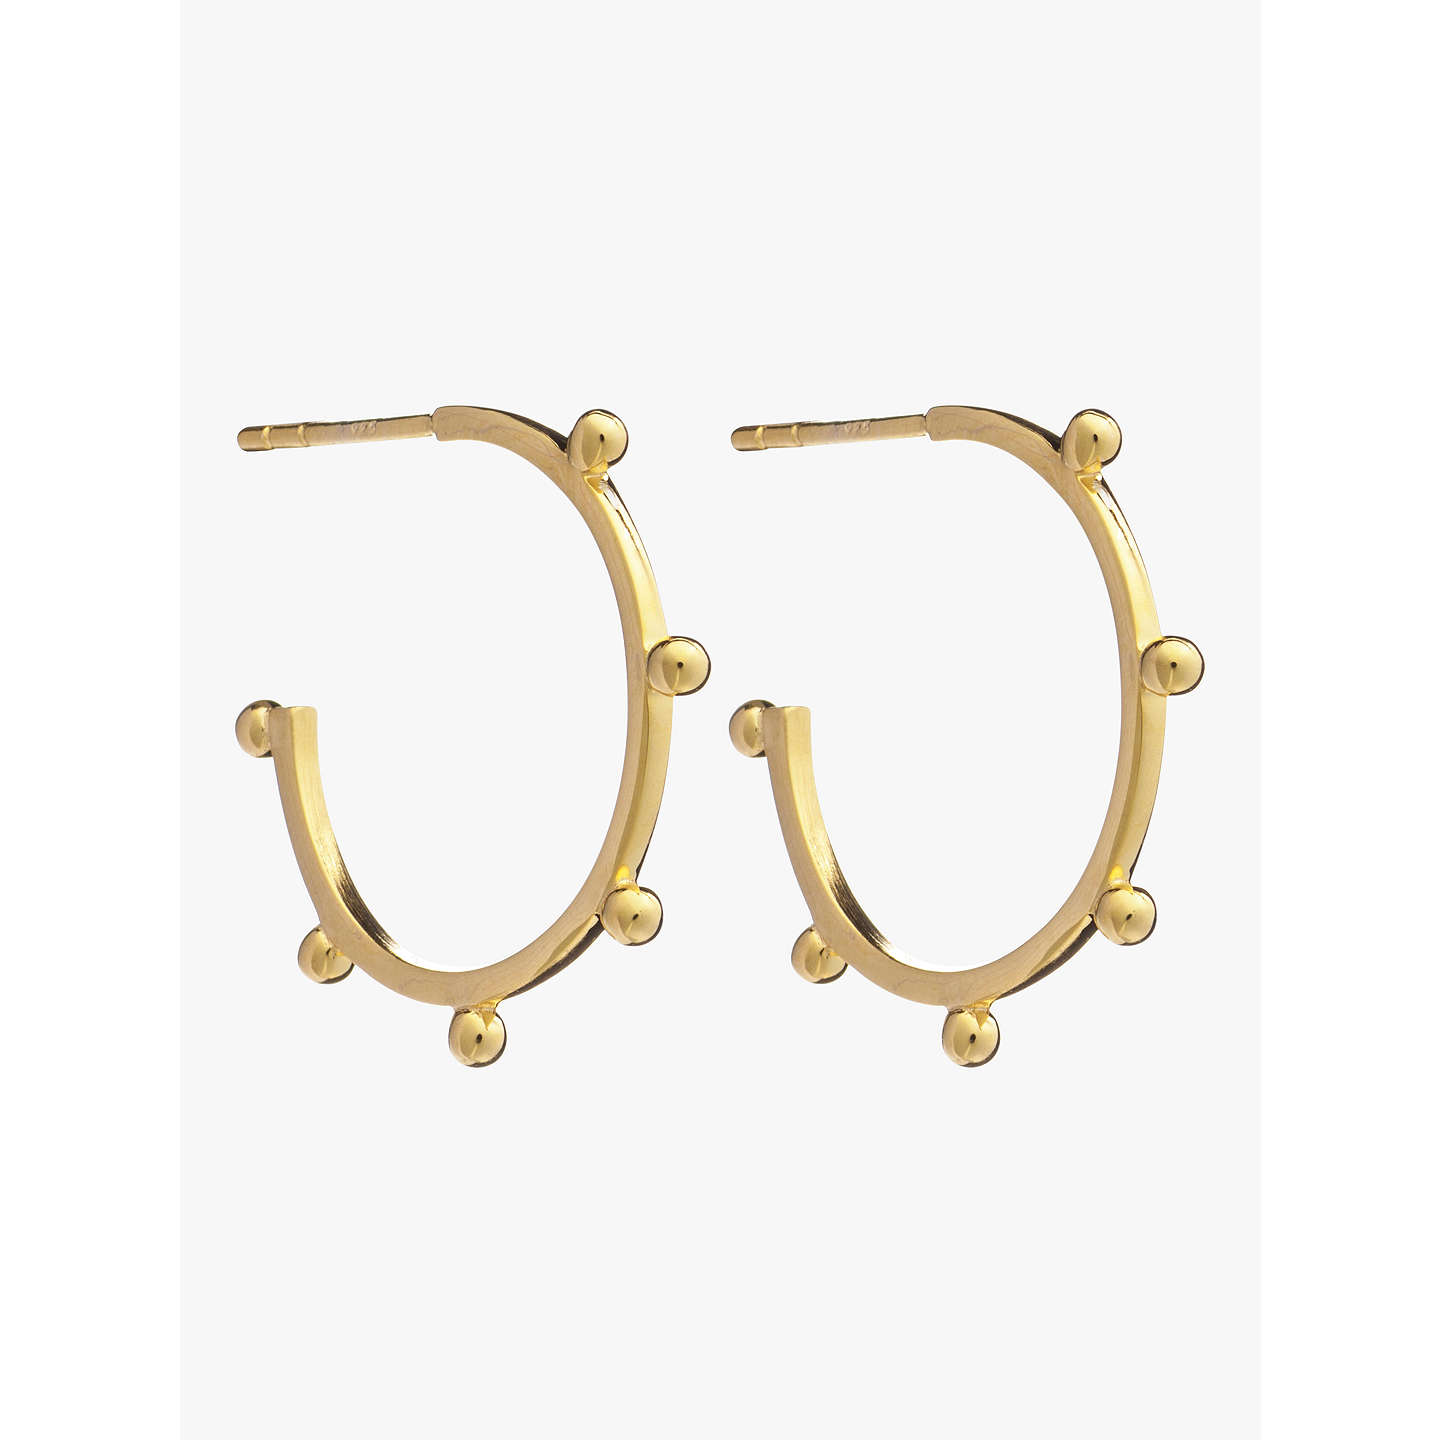 Rachel Jackson London hoop earrings - Metallic hFZEdwXpl